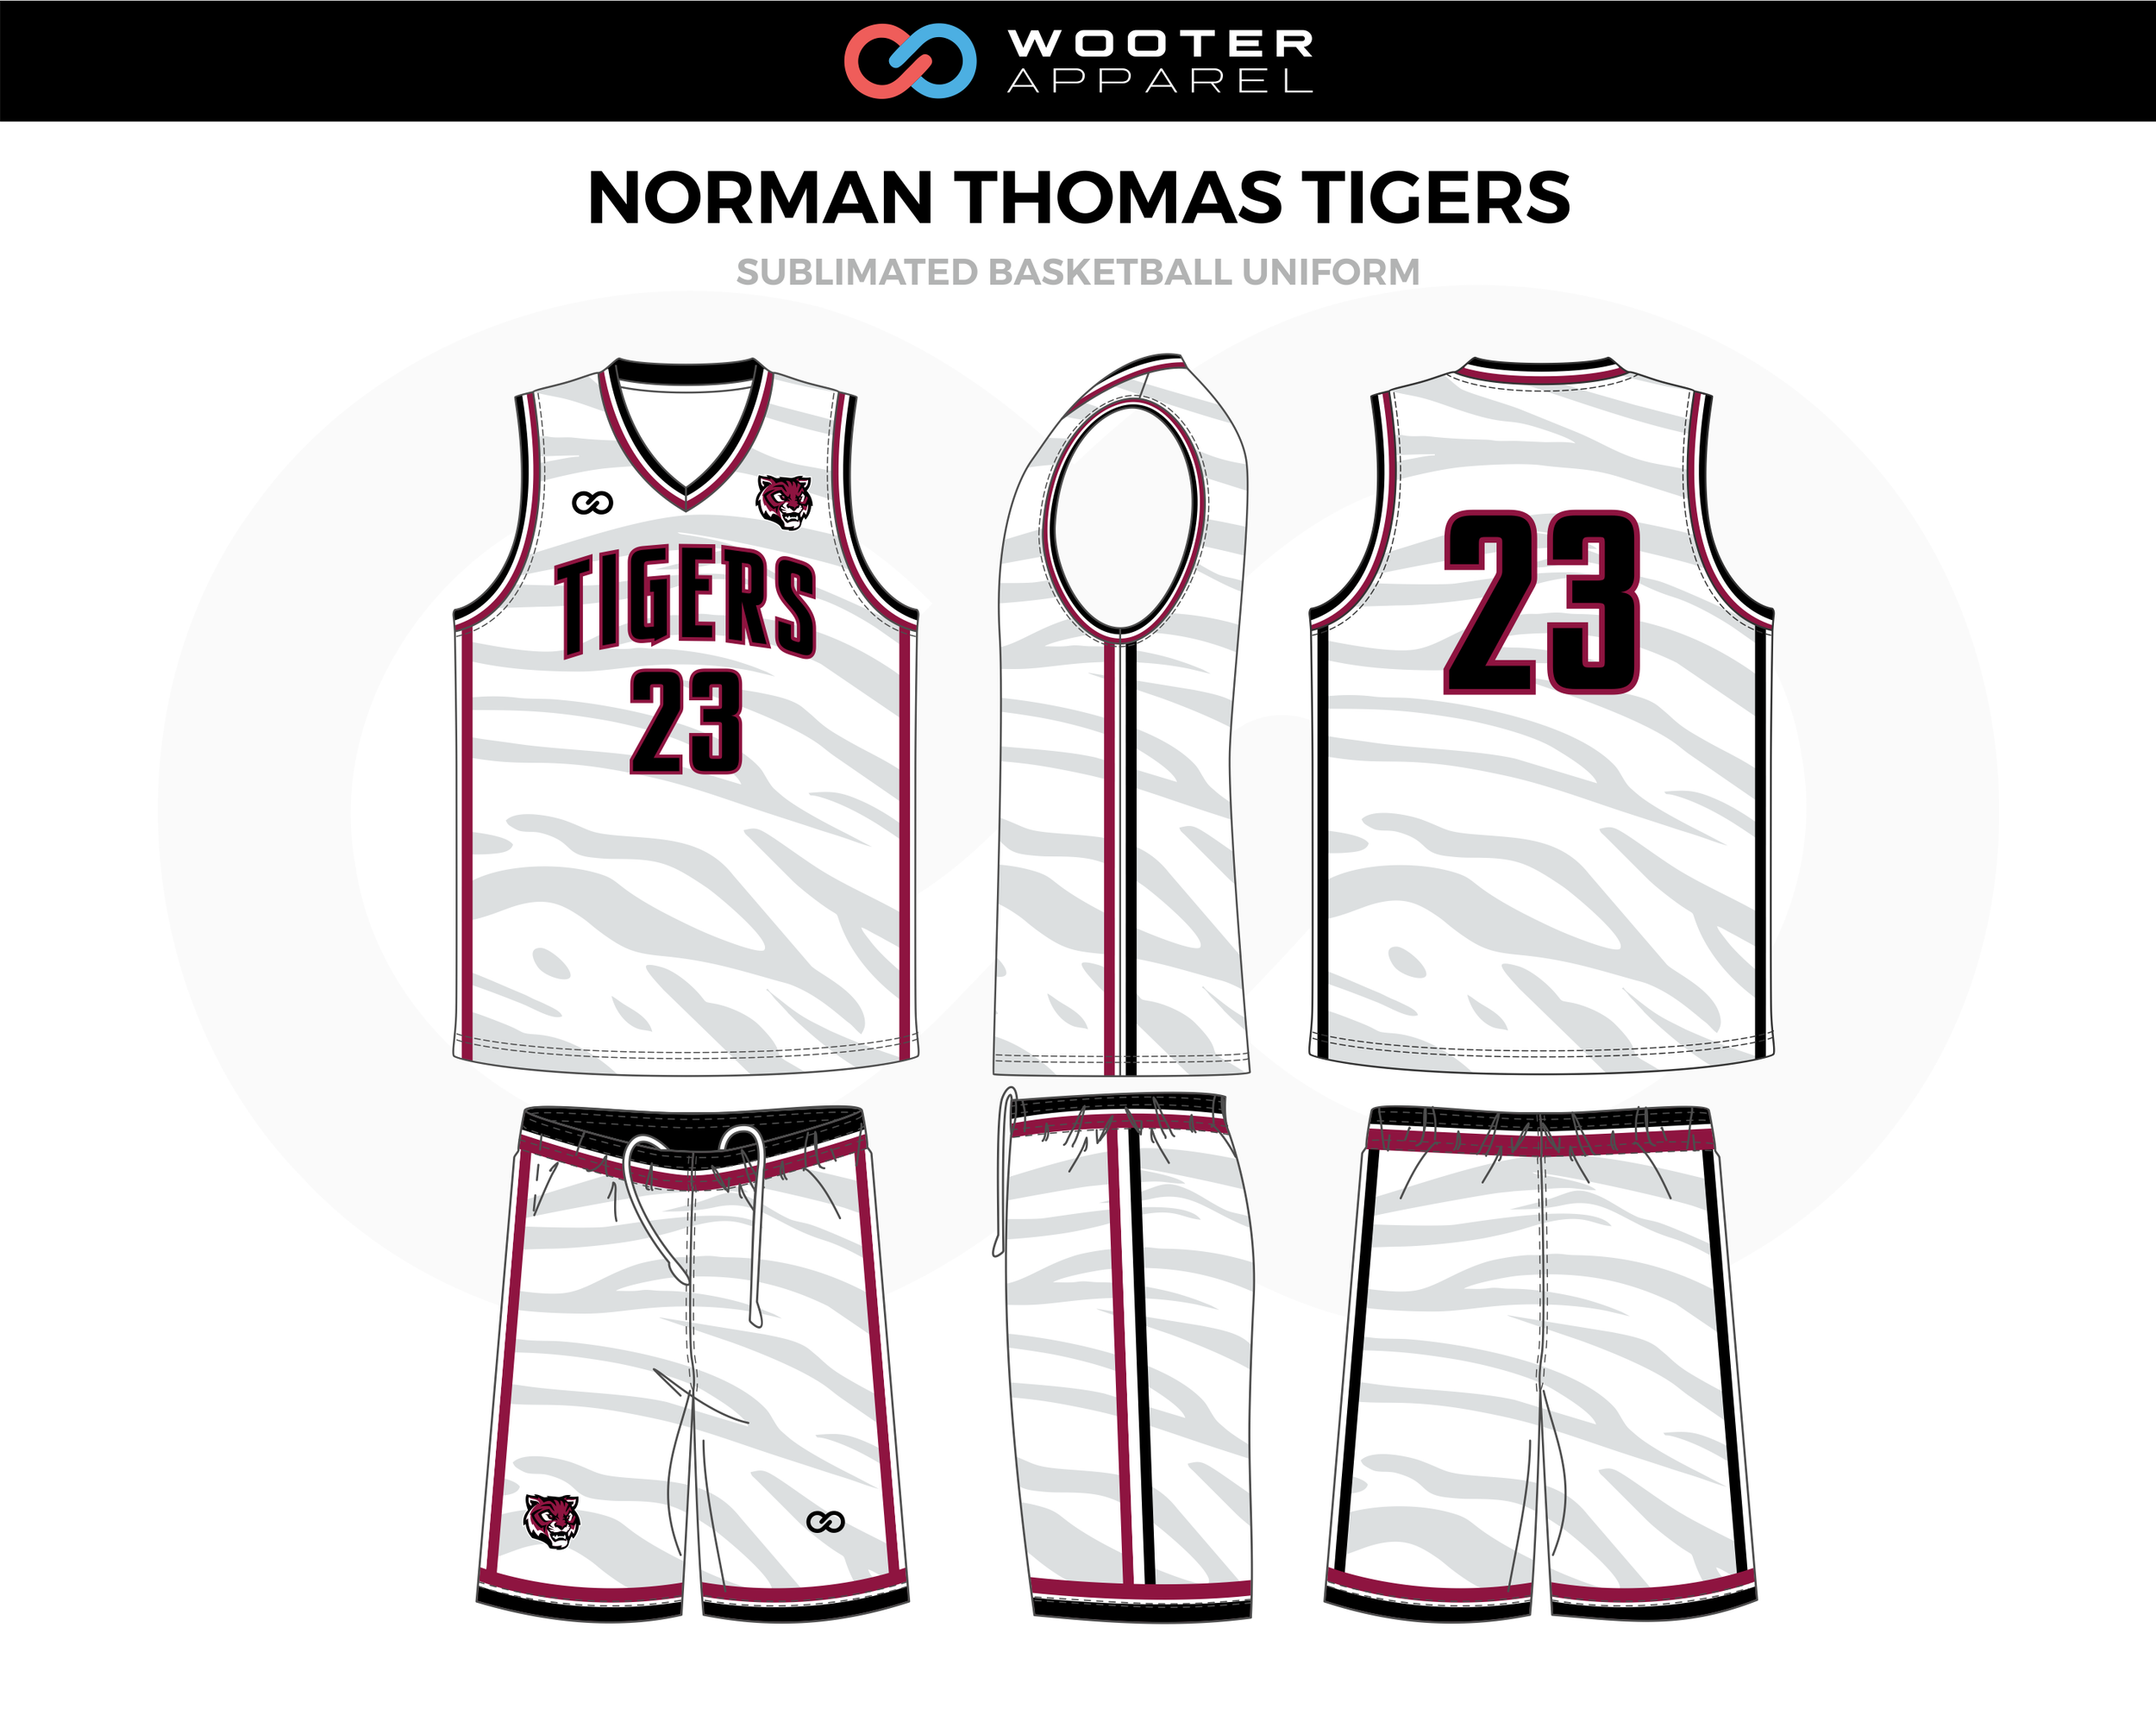 NORMAN THOMAS TIGERS White Red Black Basketball Uniform, Jersey and Shorts